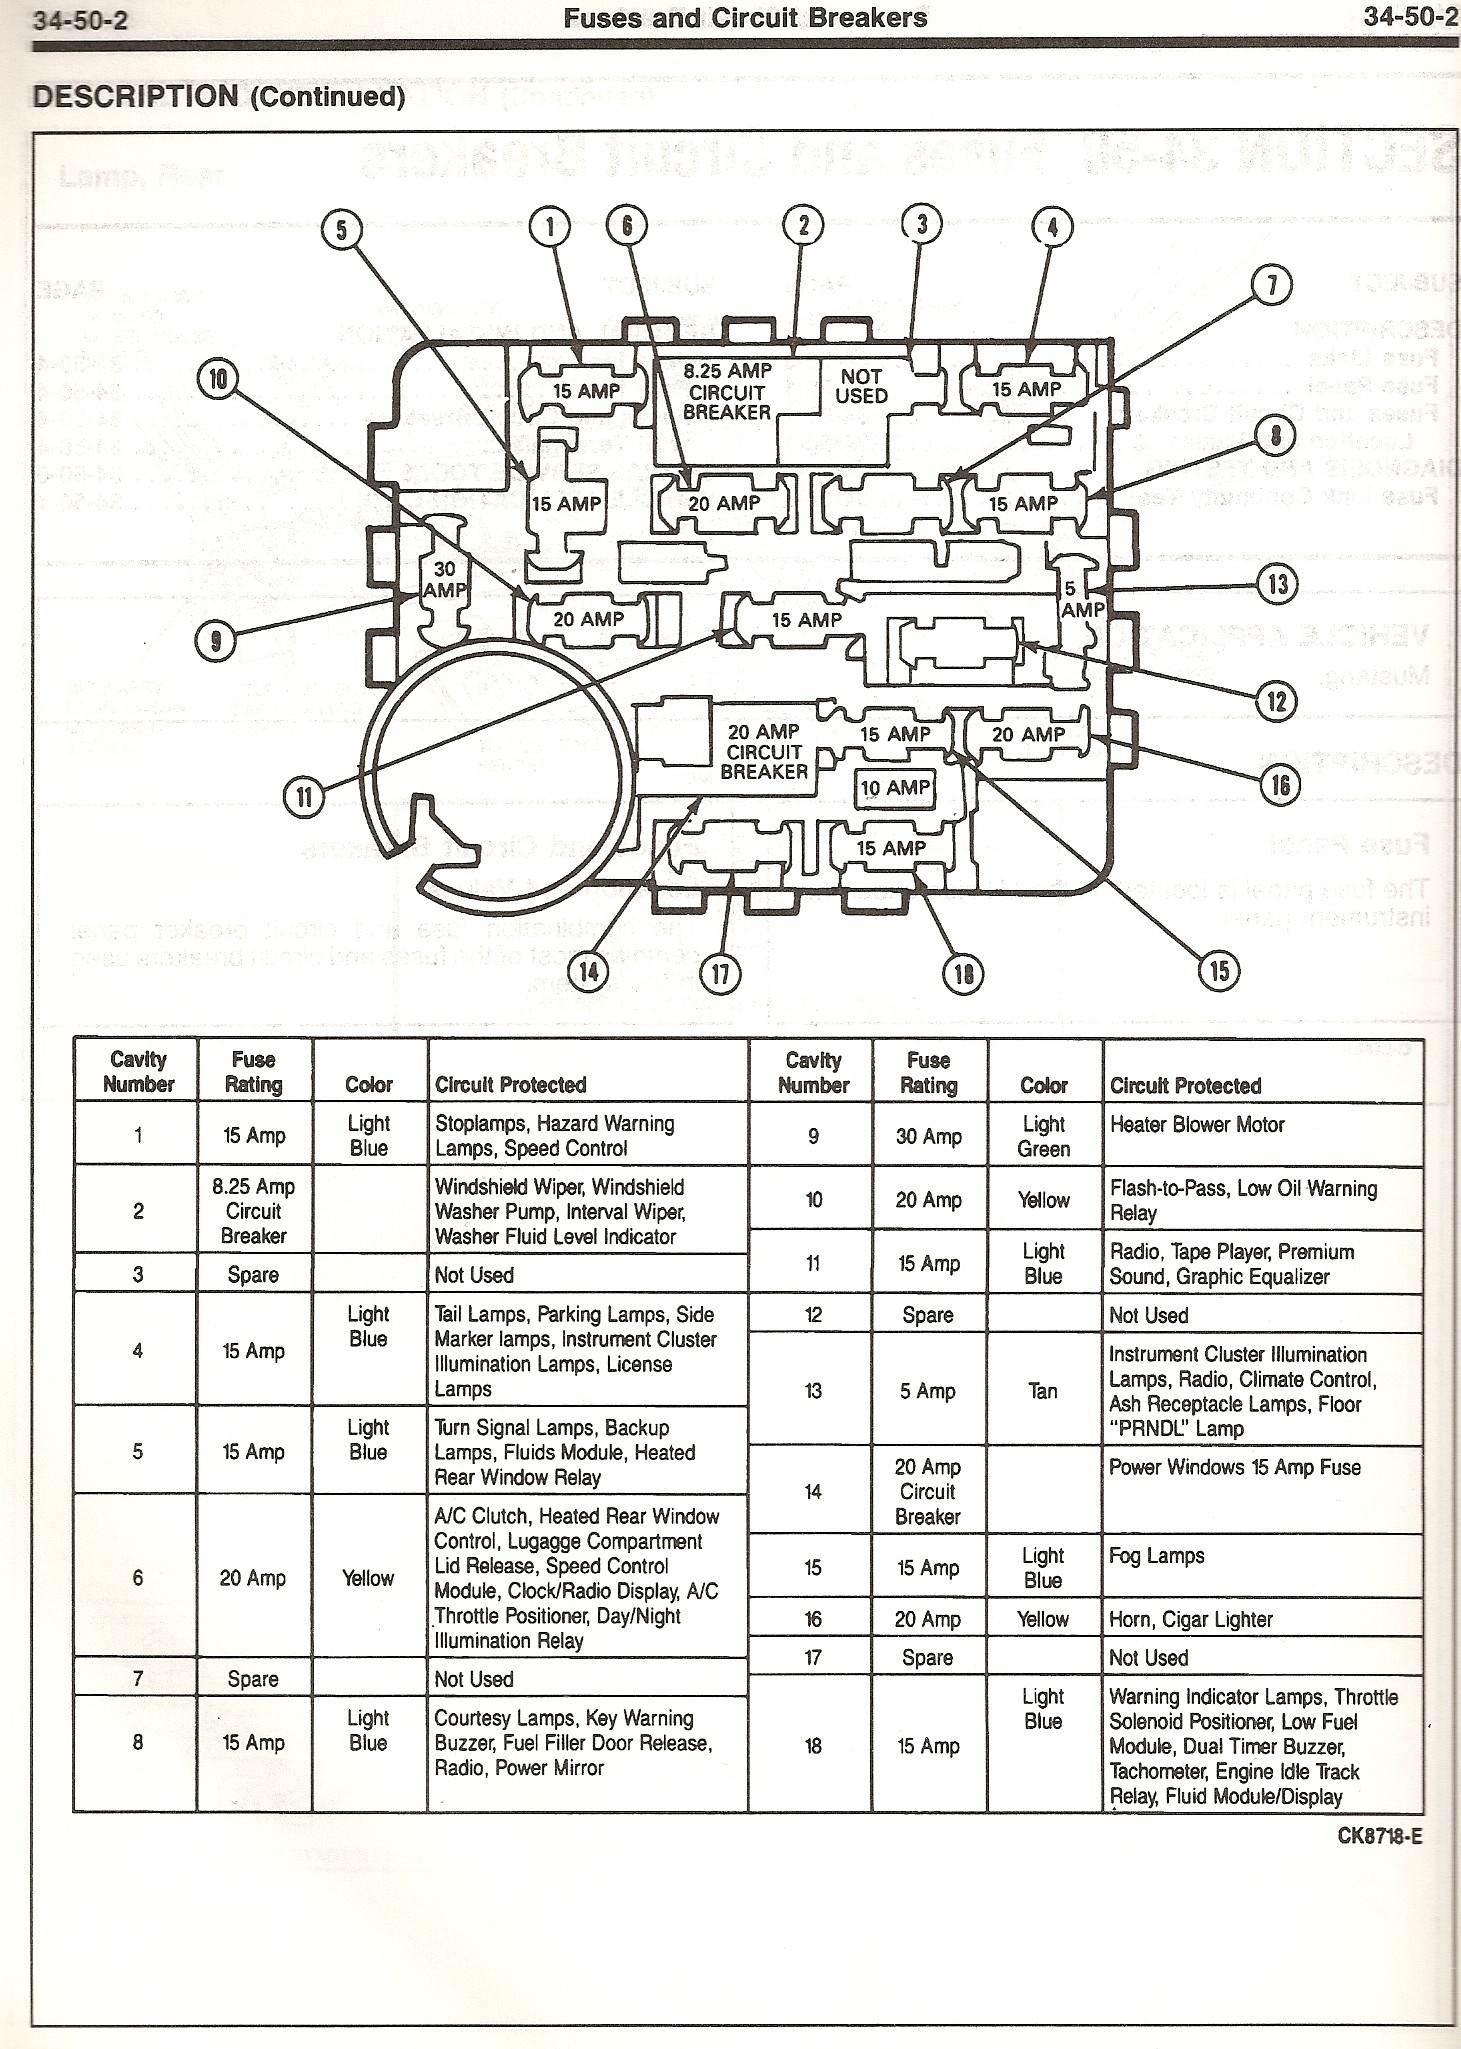 2005 ford explorer engine diagram 1986 ford mustang fuse